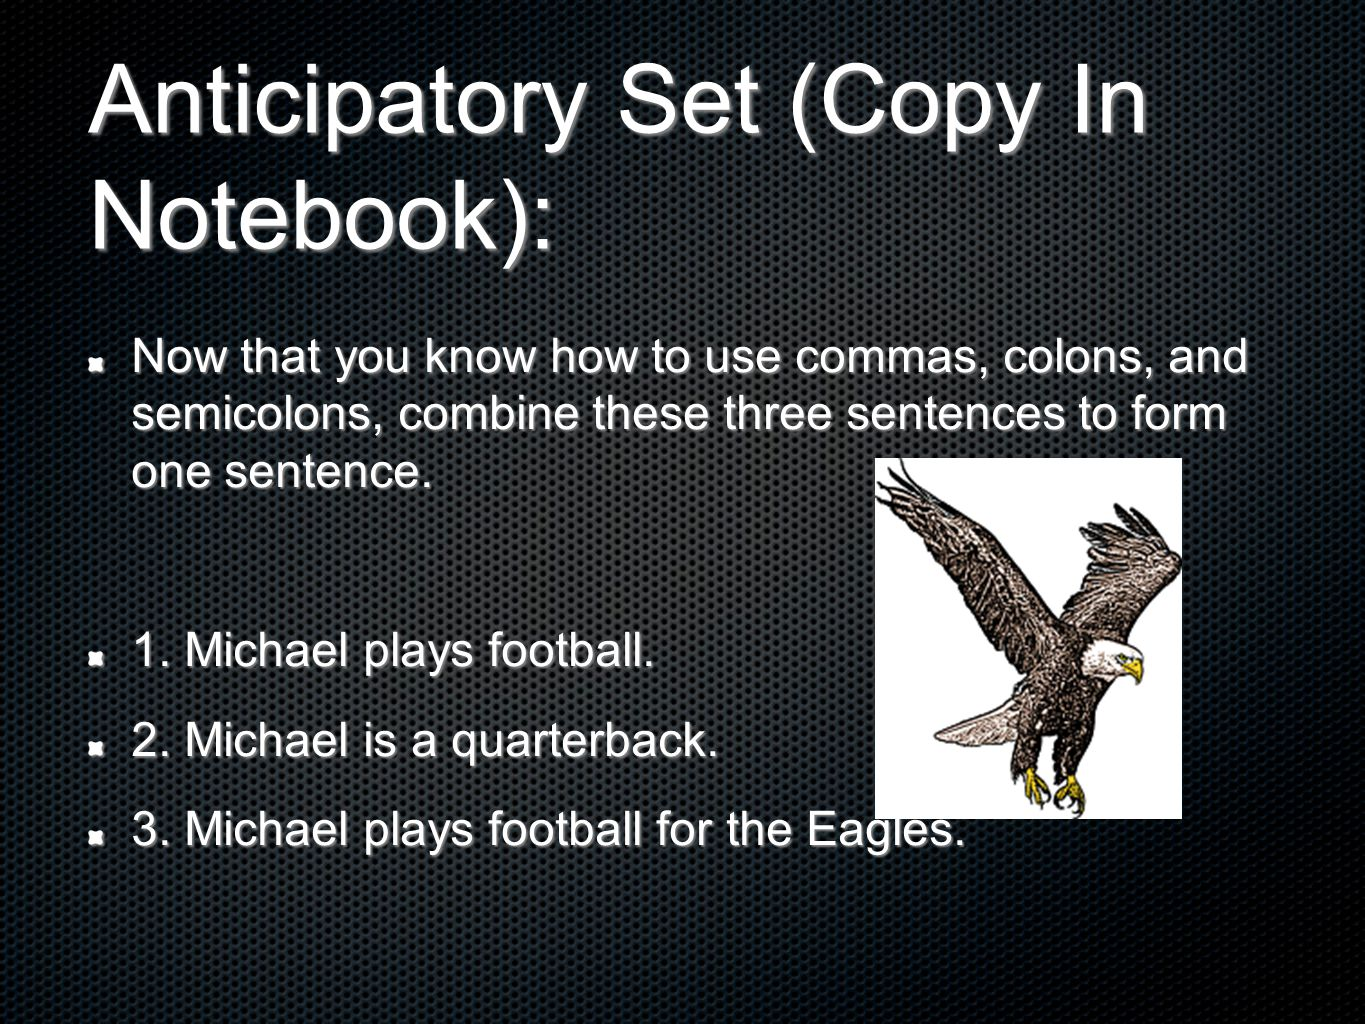 Anticipatory Set (Copy In Notebook):